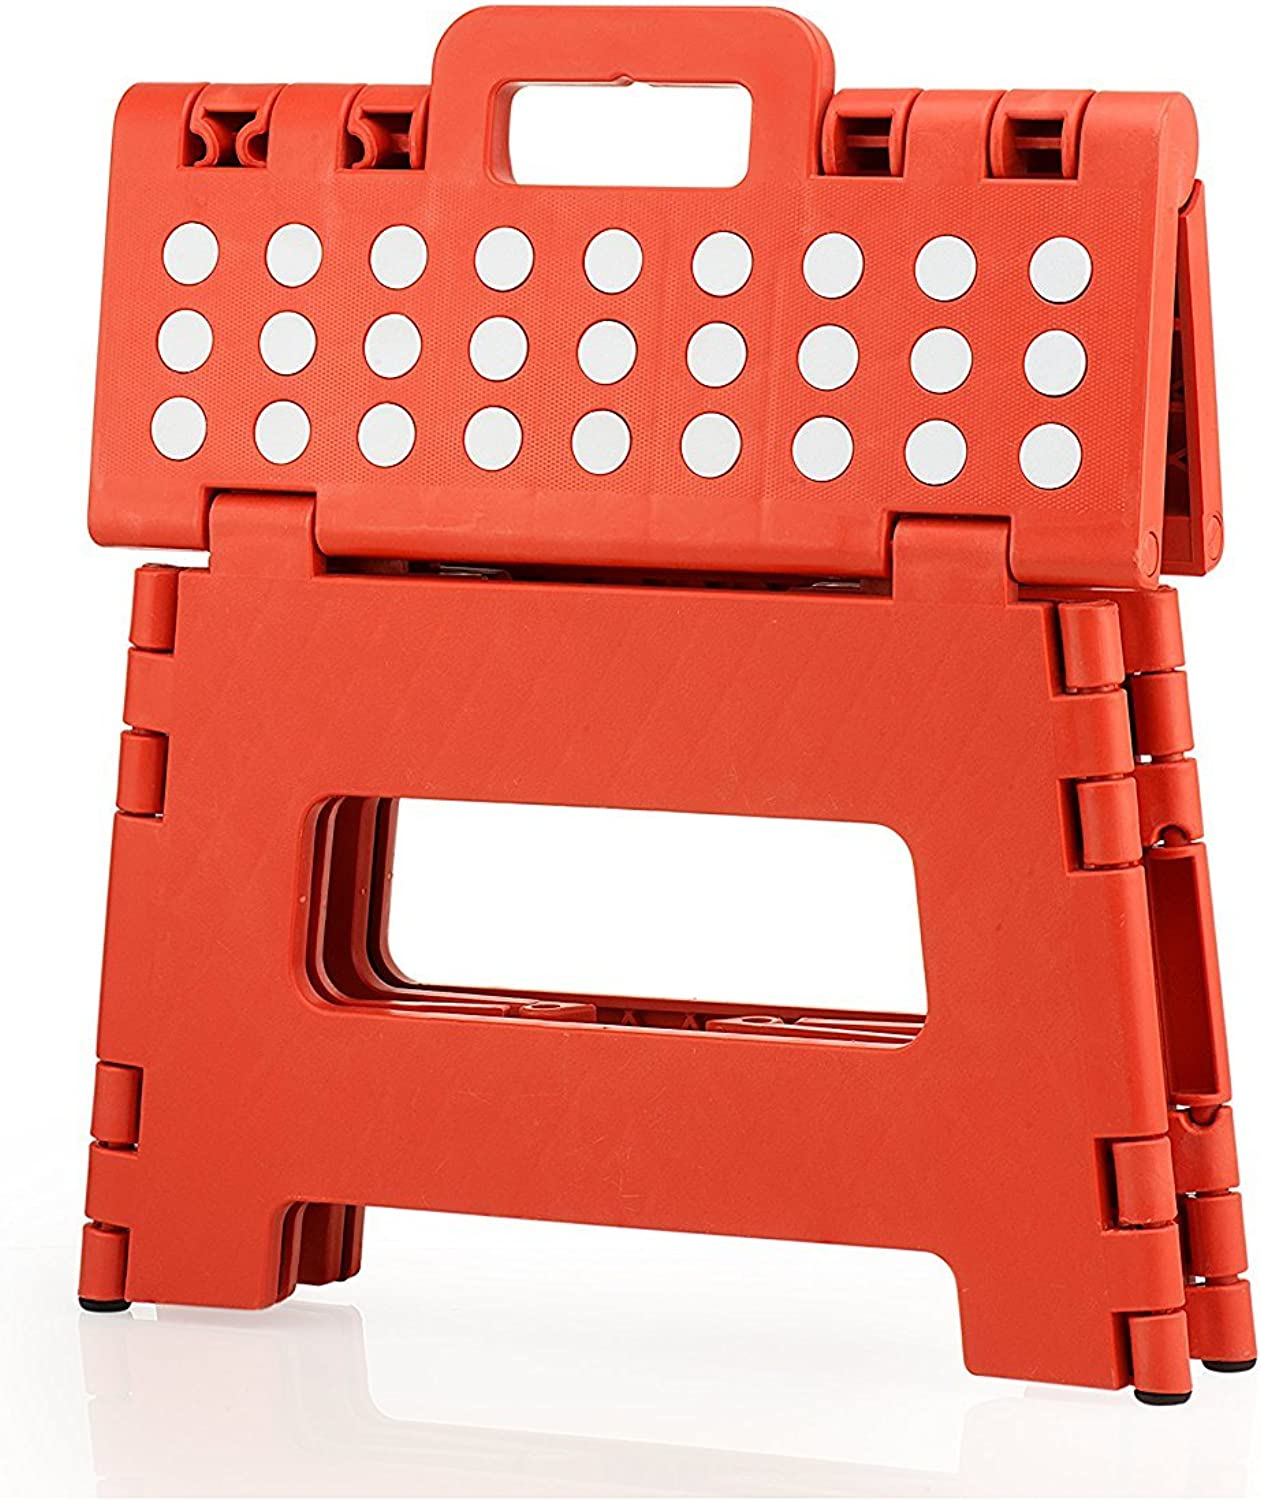 StepSafe Non Slip Folding Step Stool for Kids and Adults with Handle 9  in Height, Holds up to 300 Lb  (red)